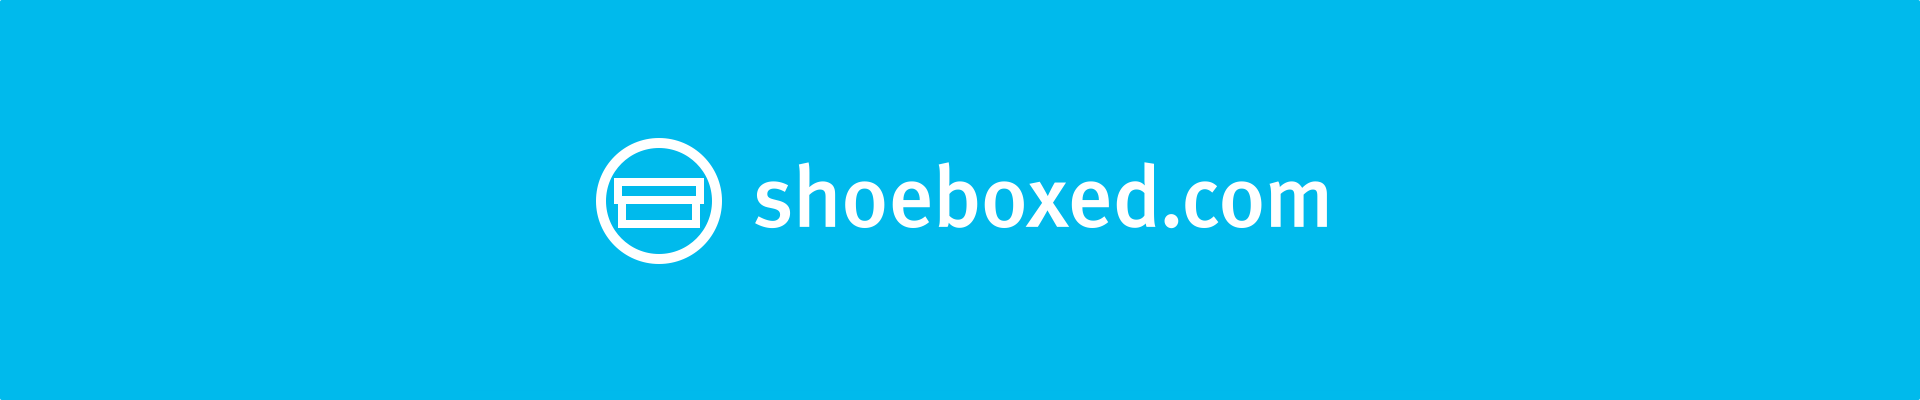 Apr 03, · Shoeboxed is a no-brainer for anyone who needs to track their receipts and mileage without the added pain of manual data-entry. Shoeboxed really does all of the work for you! Simply snap a picture and we'll extract the vendor, total amount, payment method, date and also categorize the receipts into the most common tax categories/5().